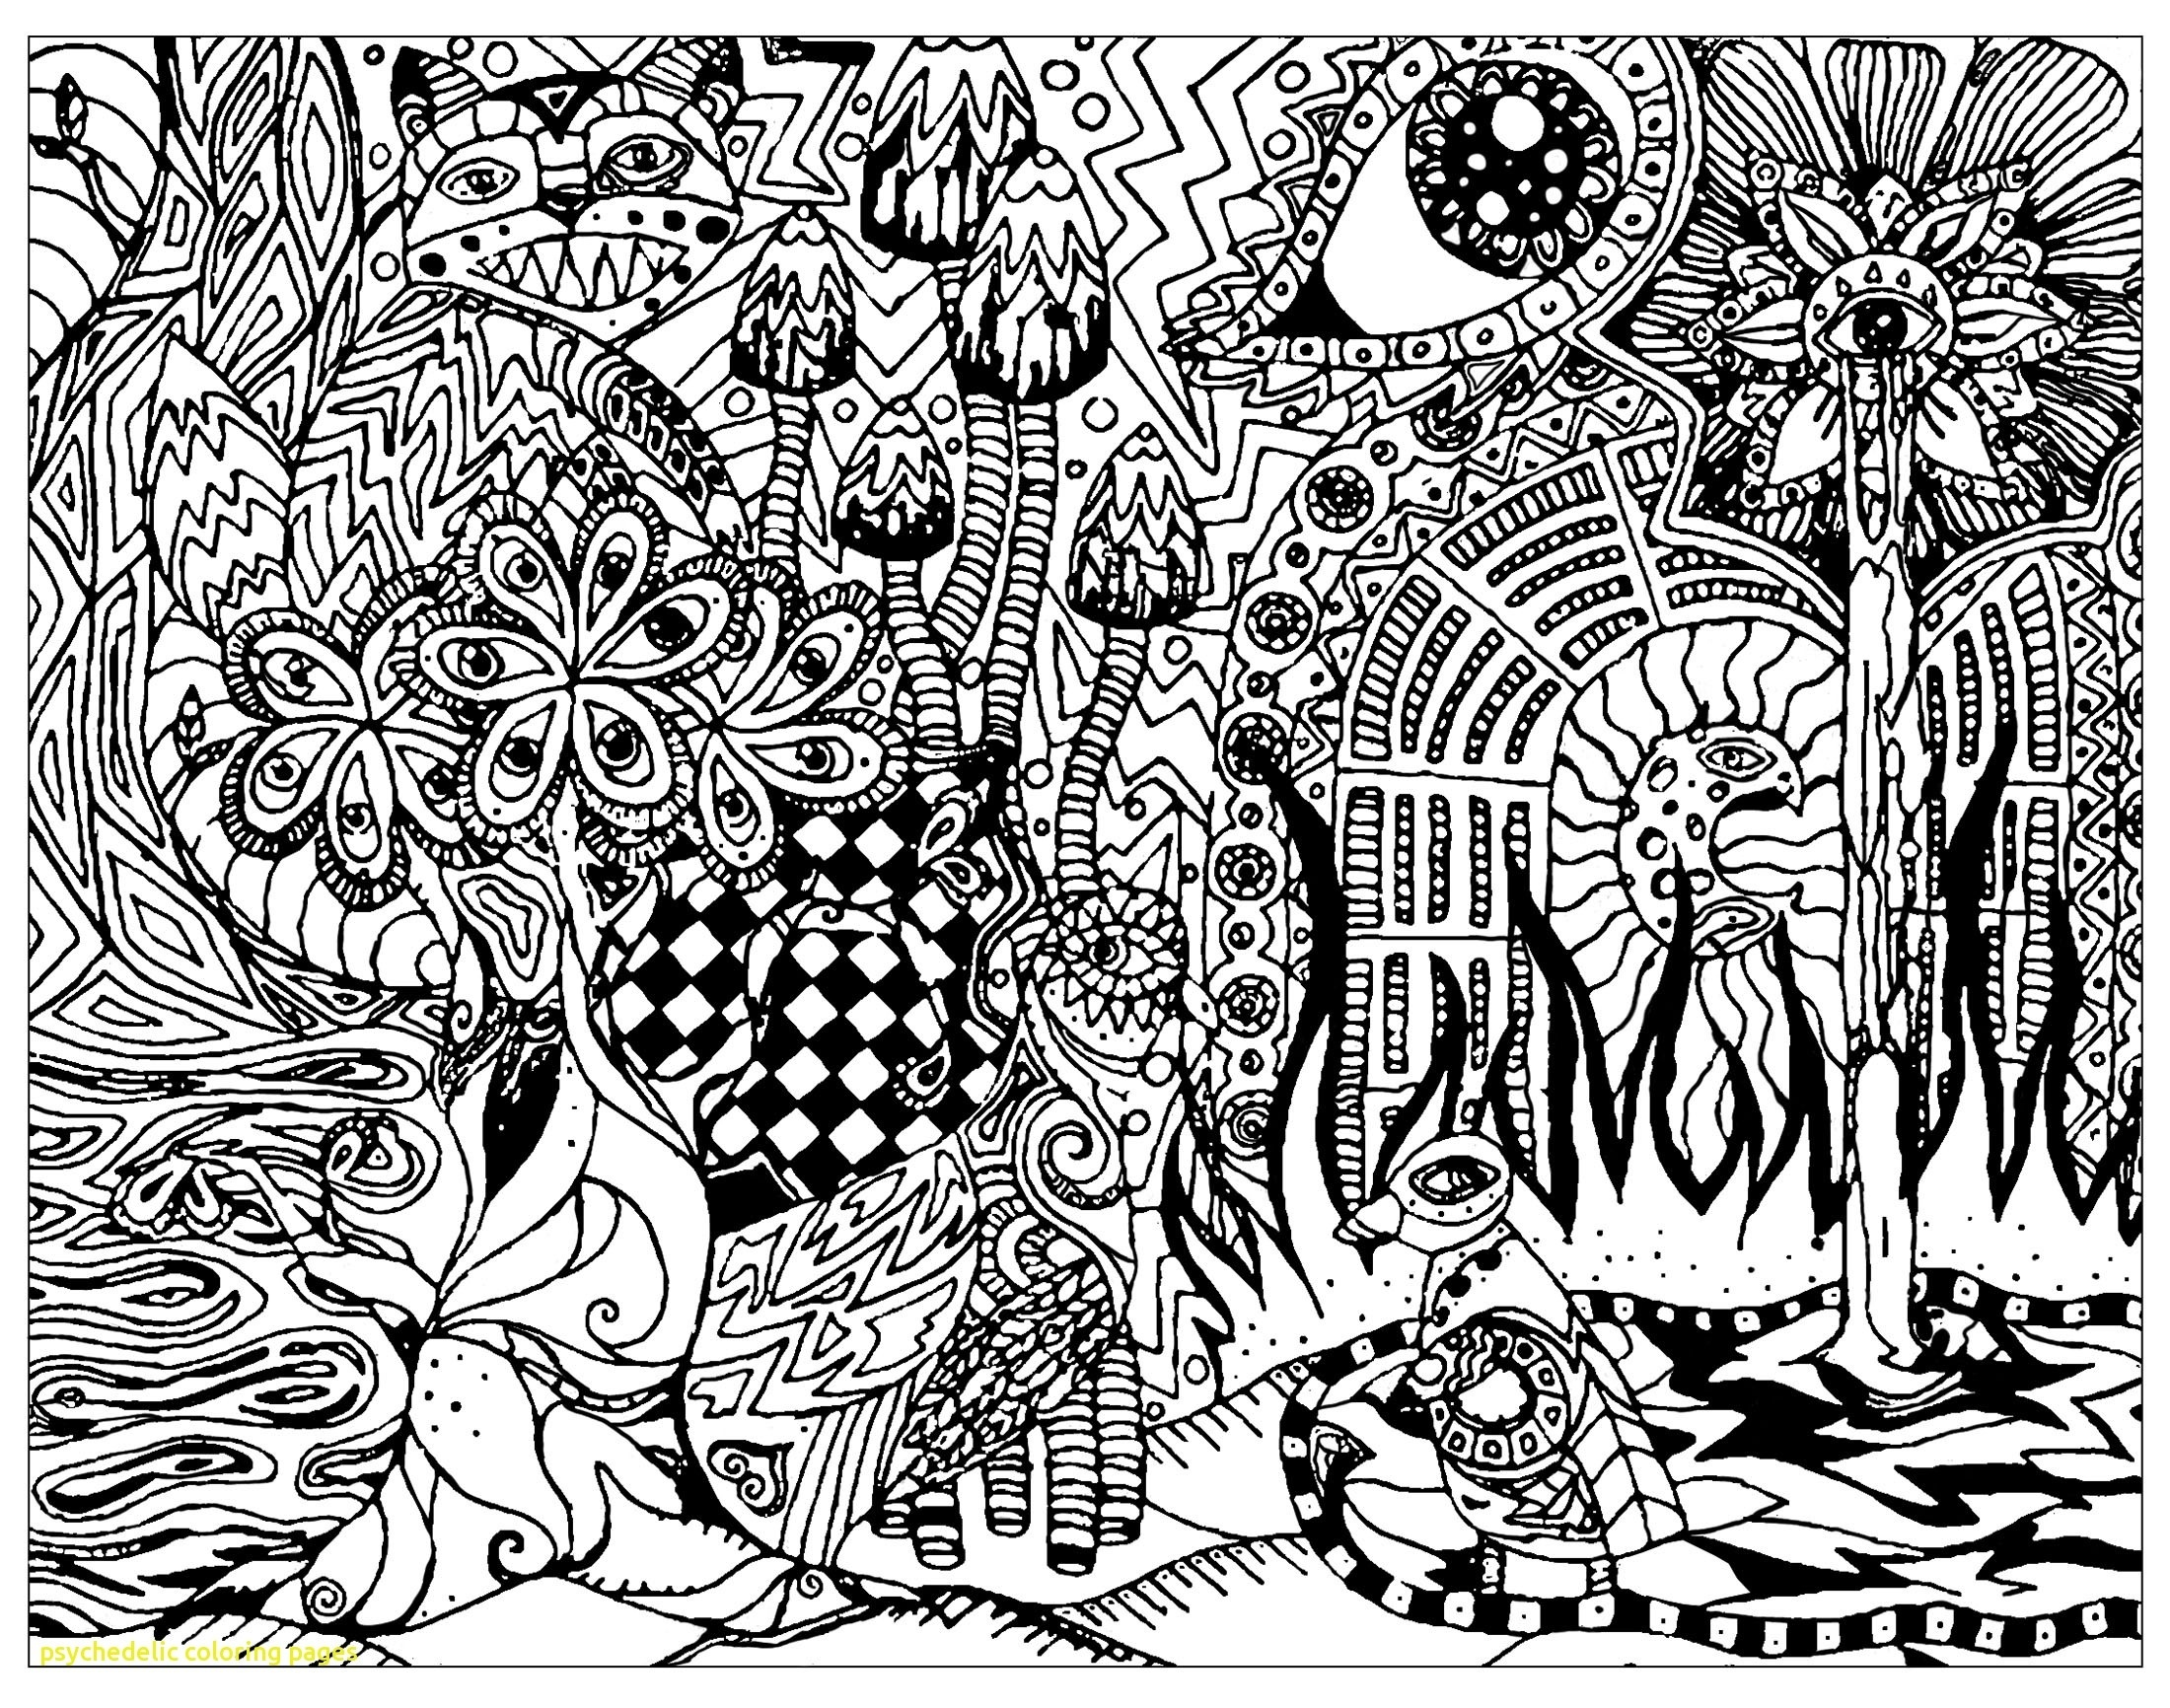 Coloring ~ Trippyoloring Pages Free Printable Stoner Weed With - Free Printable Trippy Coloring Pages